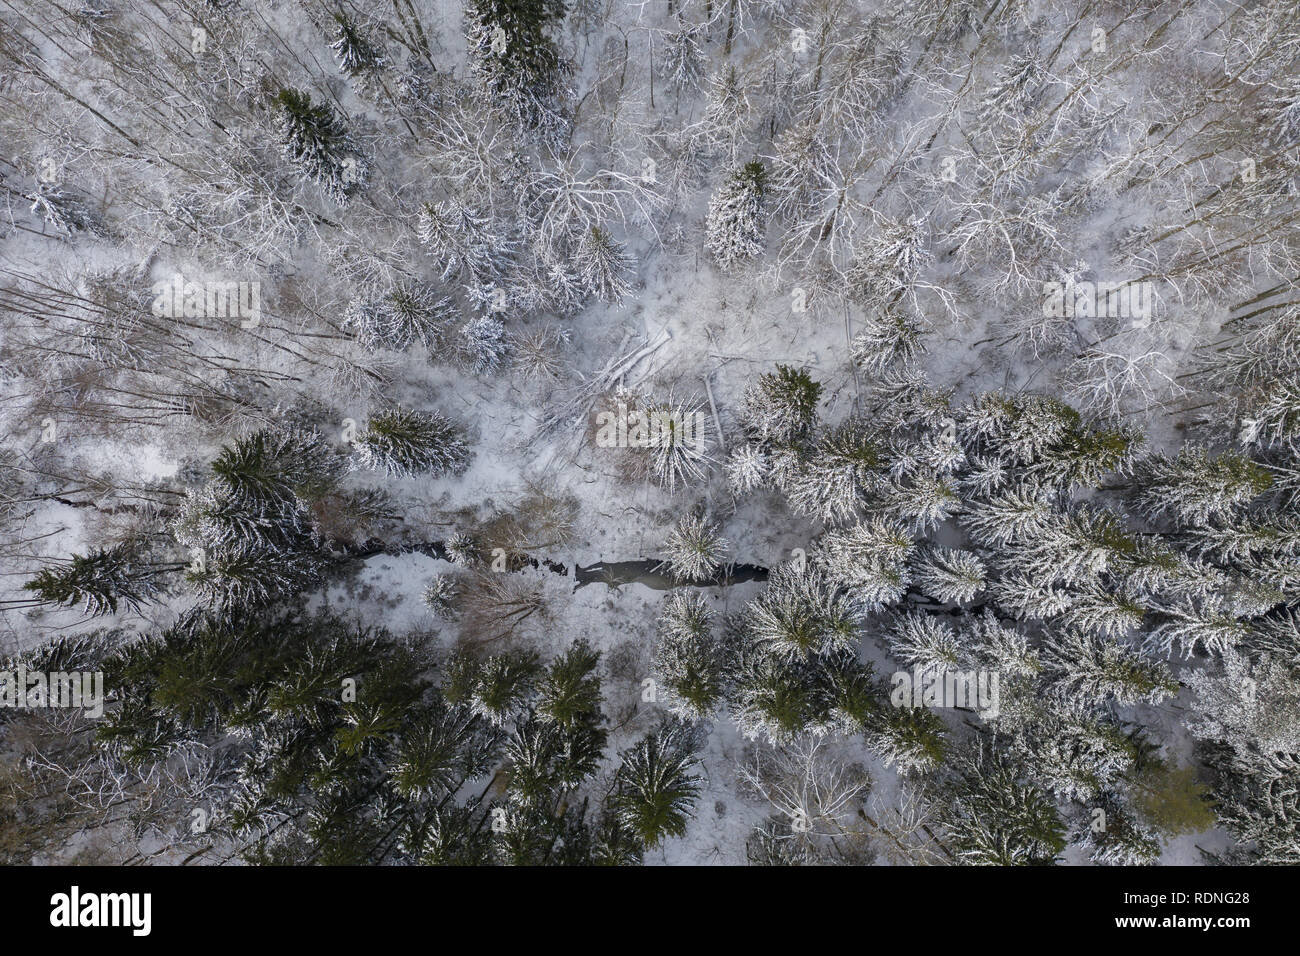 Drone photography of winter forest and stream during day - Stock Image